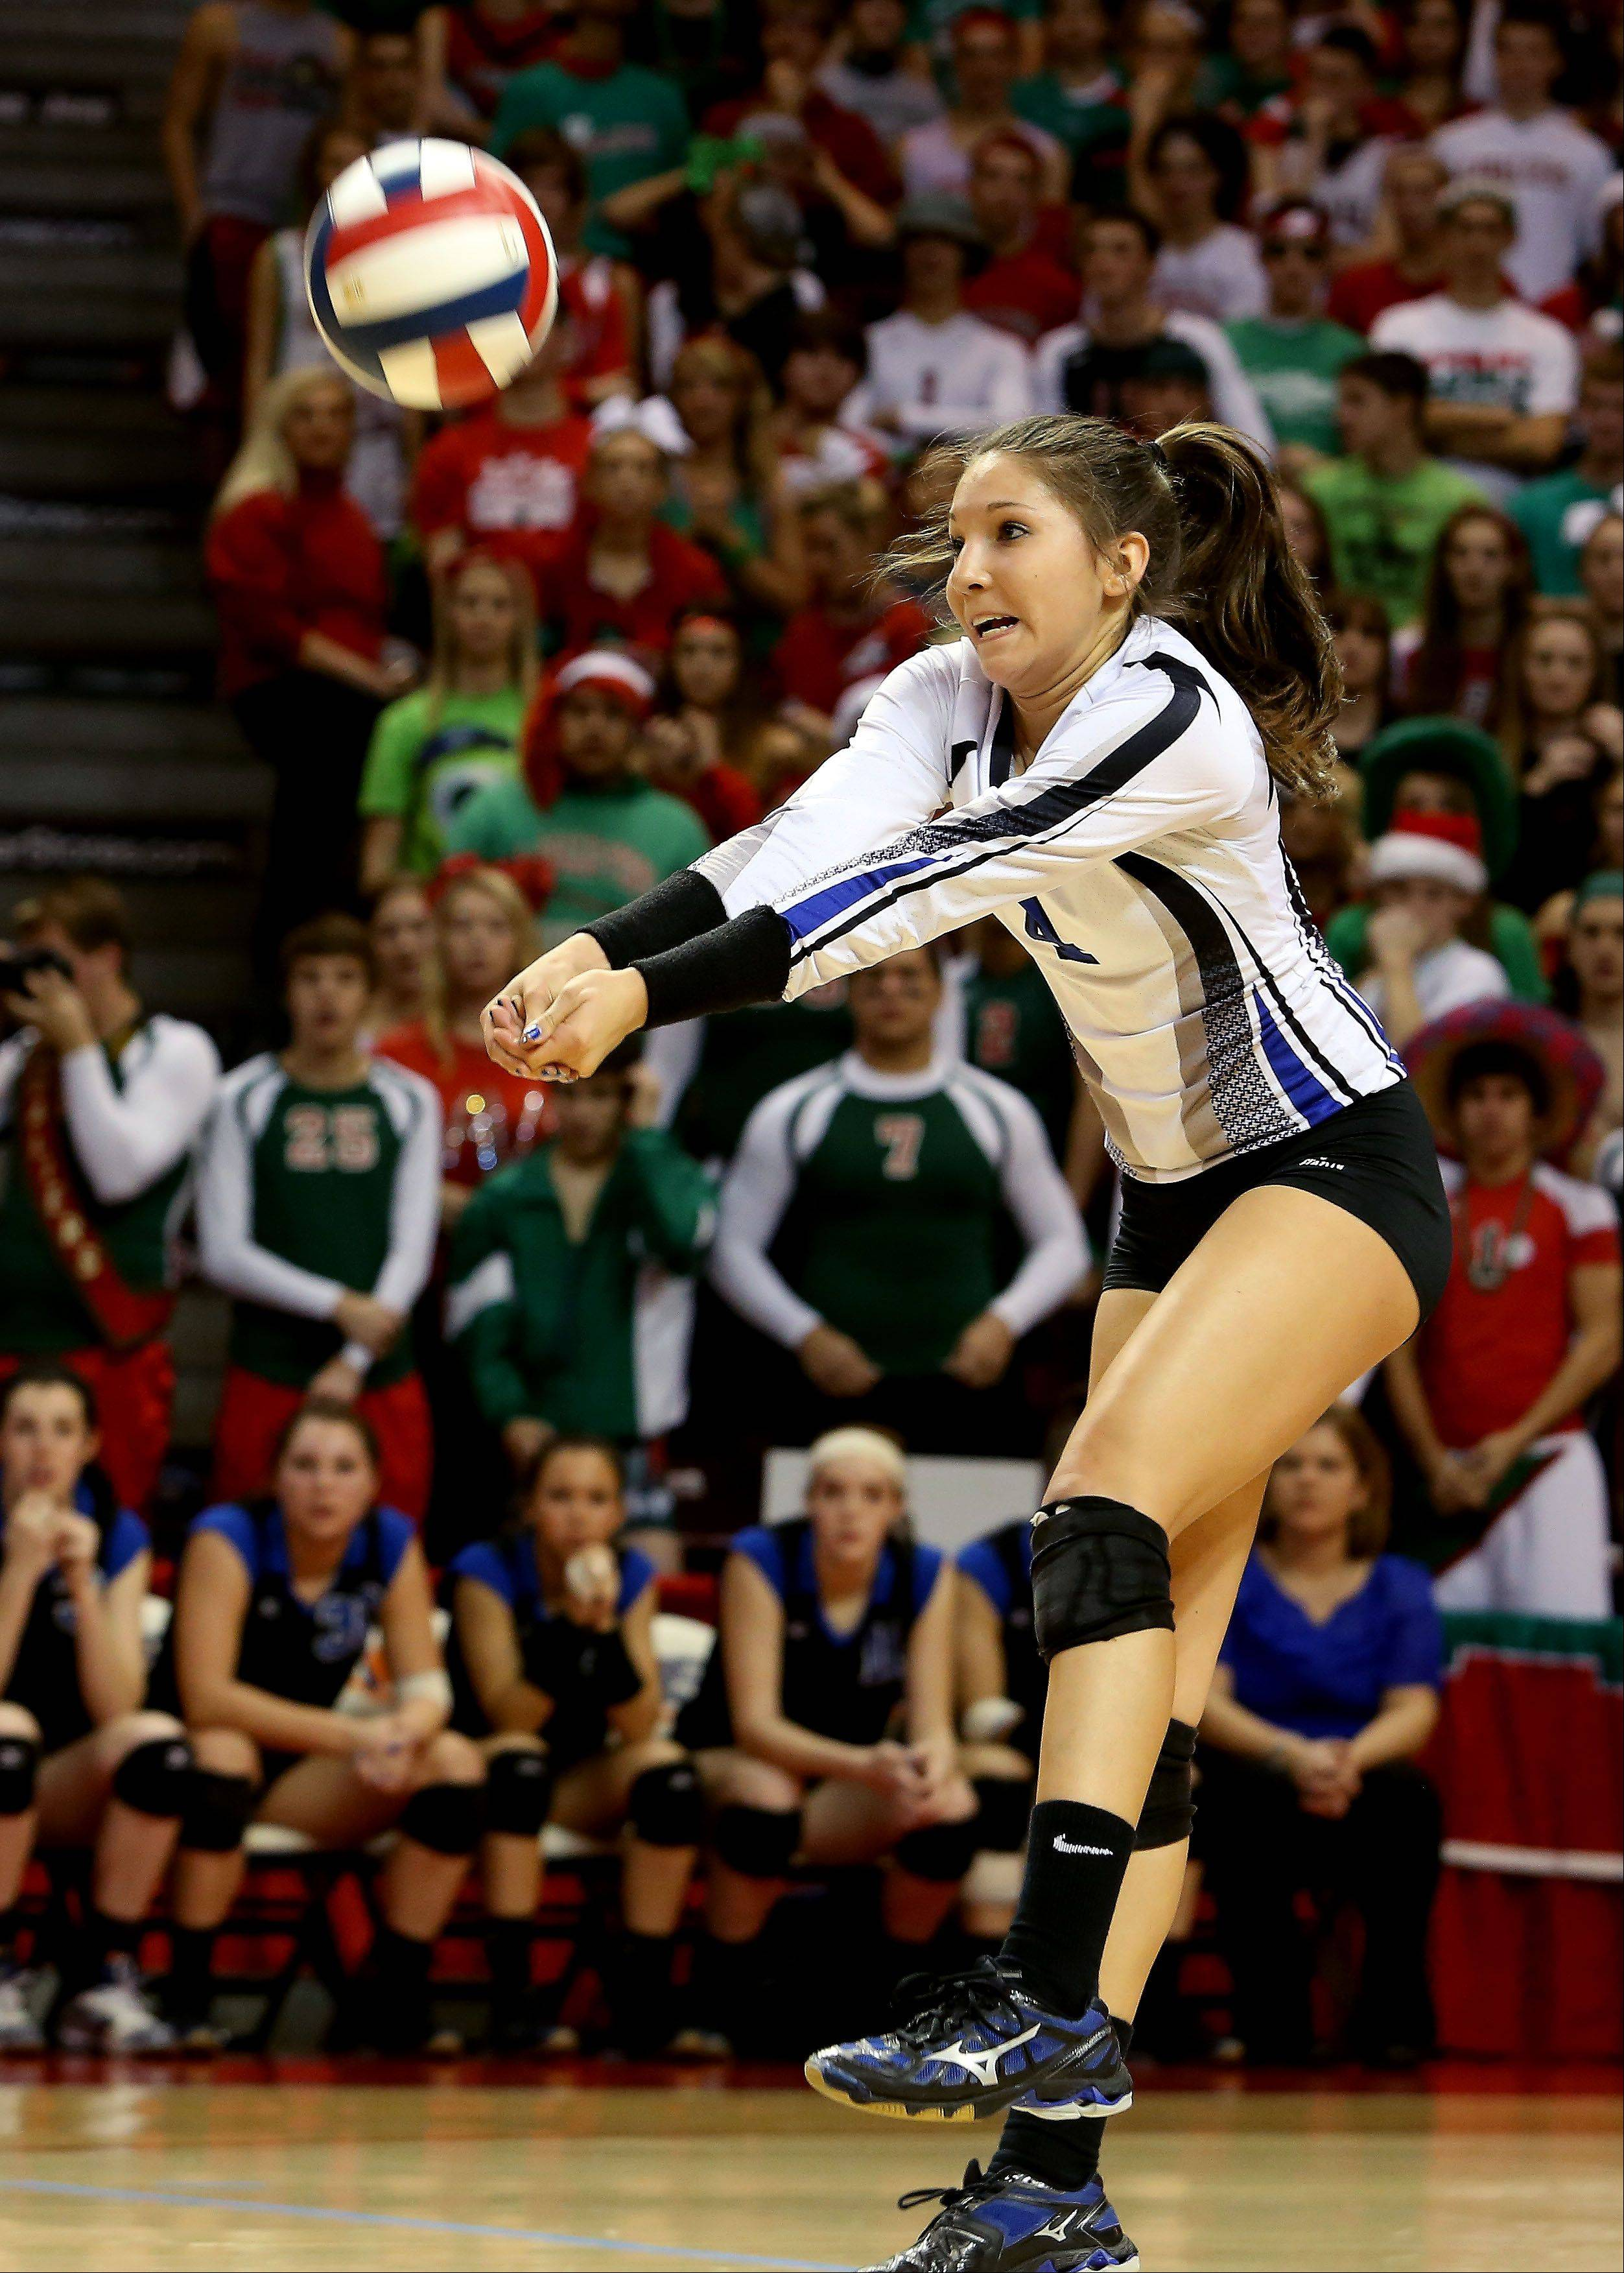 Sam Dubiel of St. Francis returns a shot from LaSalle-Peru in the Class 3A championship girls volleyball match on Saturday in Normal.